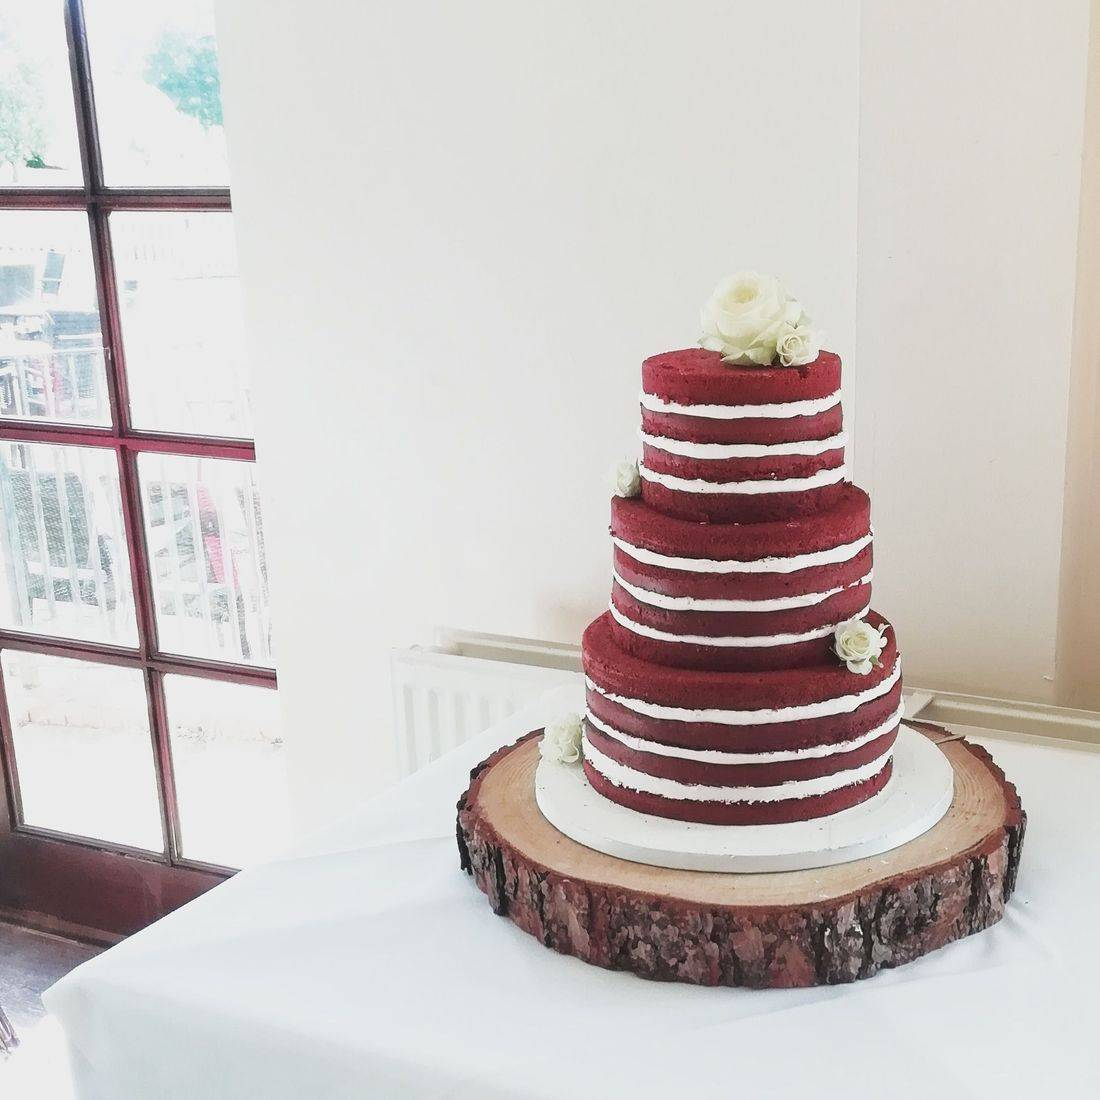 3 tier red velvet naked cake with fresh flowers and buttercream on a log stand